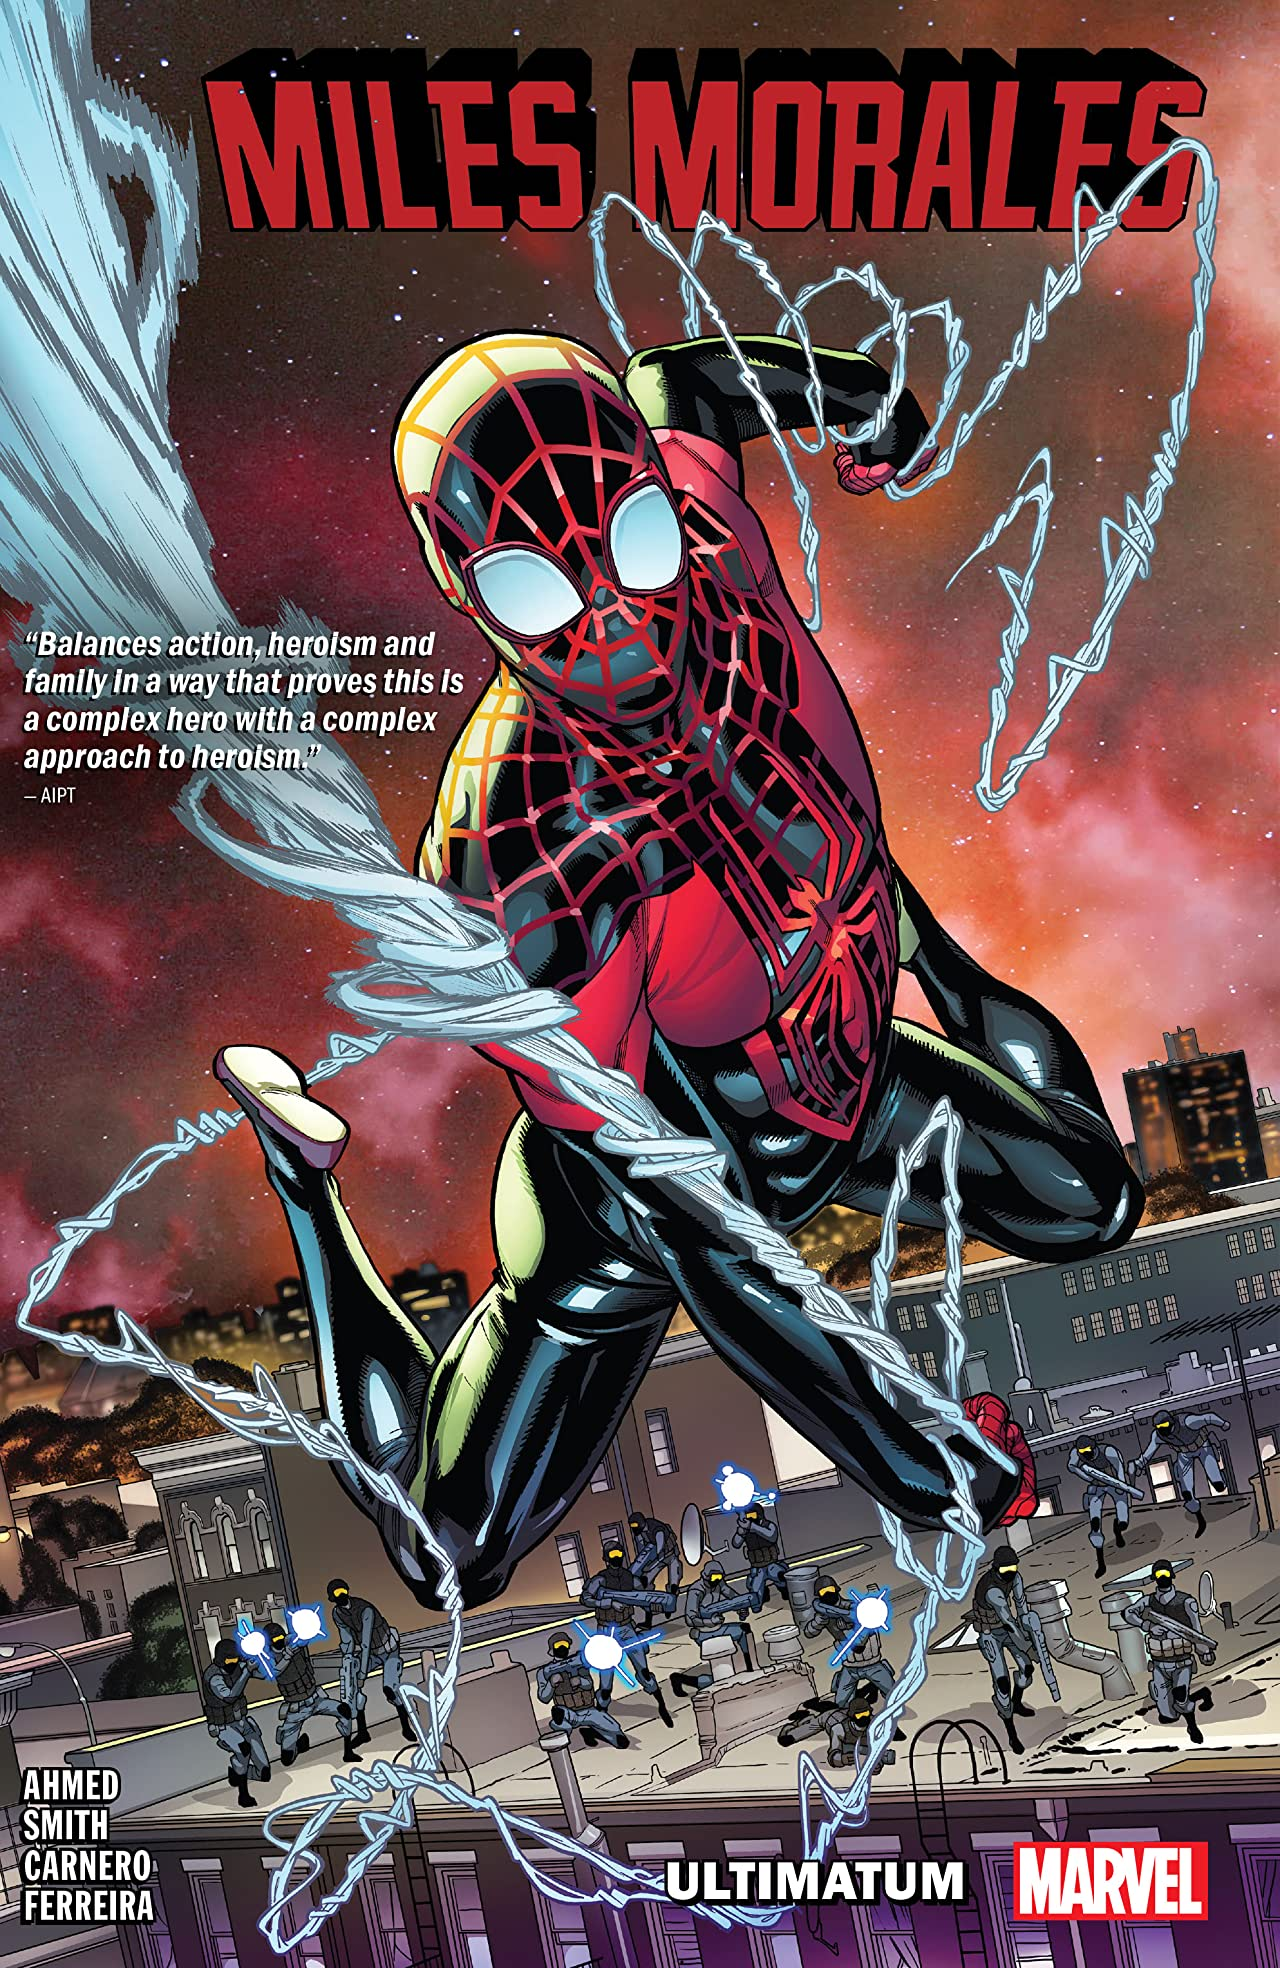 Miles Morales Vol. 4: Ultimatum